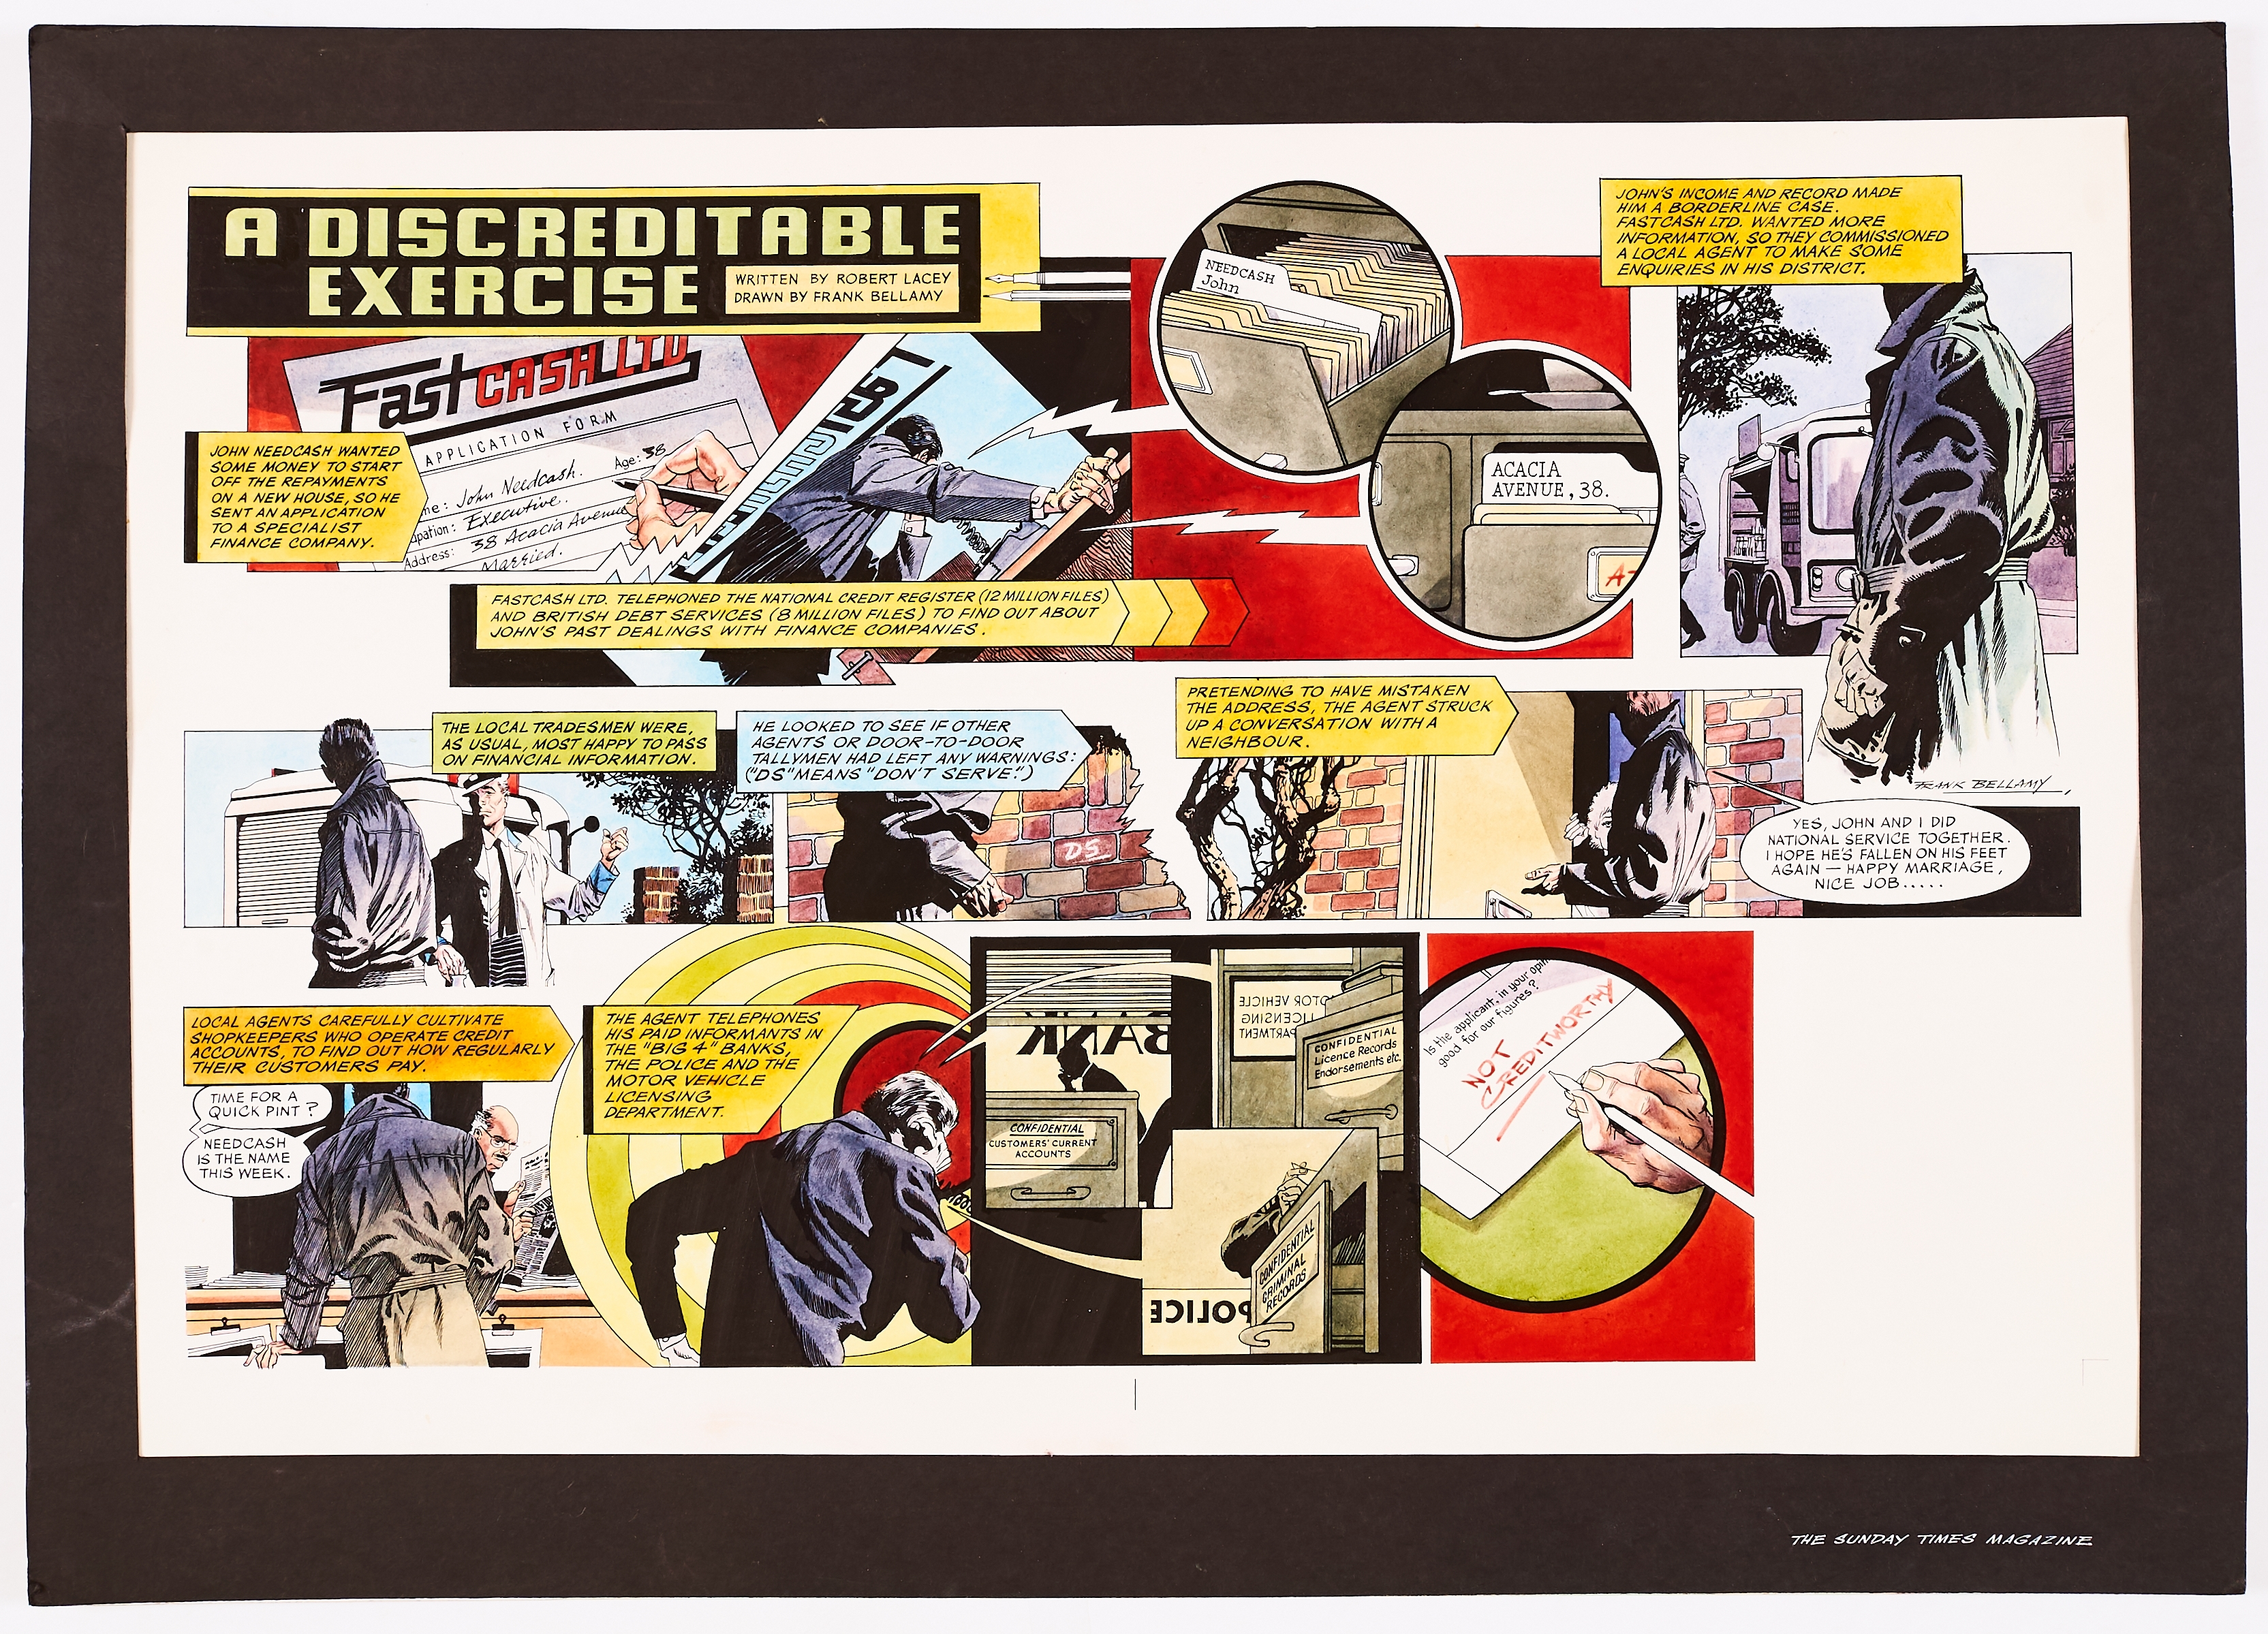 Lot 79 - A Discreditable Exercise' original double-page artwork painted and signed by Frank Bellamy for